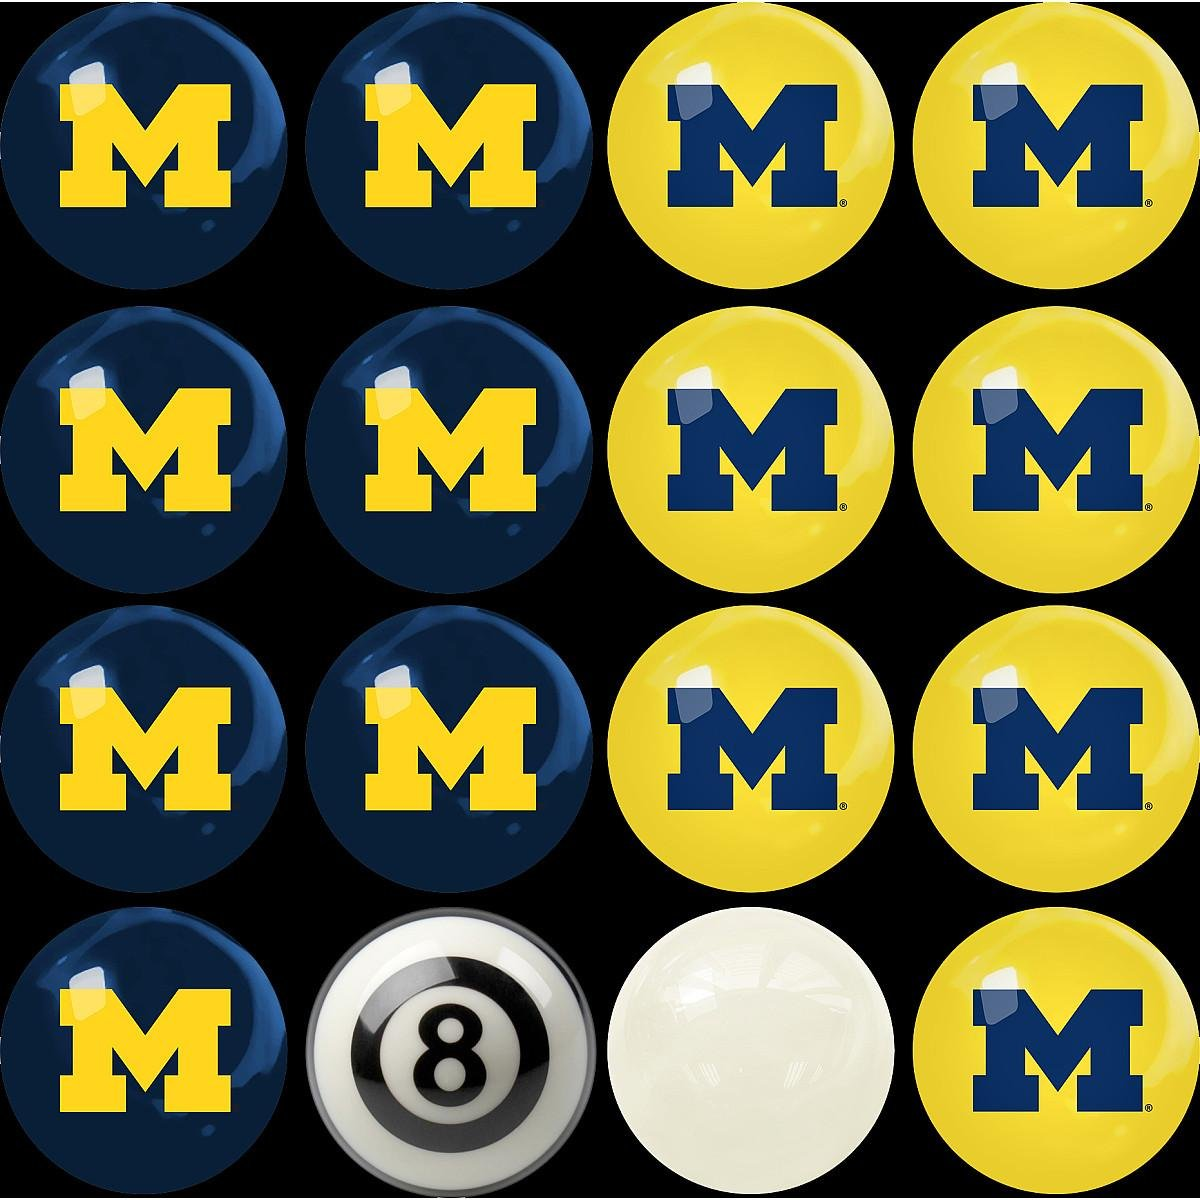 Imperial Officially Licensed NCAA Merchandise: Home vs. Away Billiard/Pool Balls, Complete 16 Ball Set, Michigan Wolverines